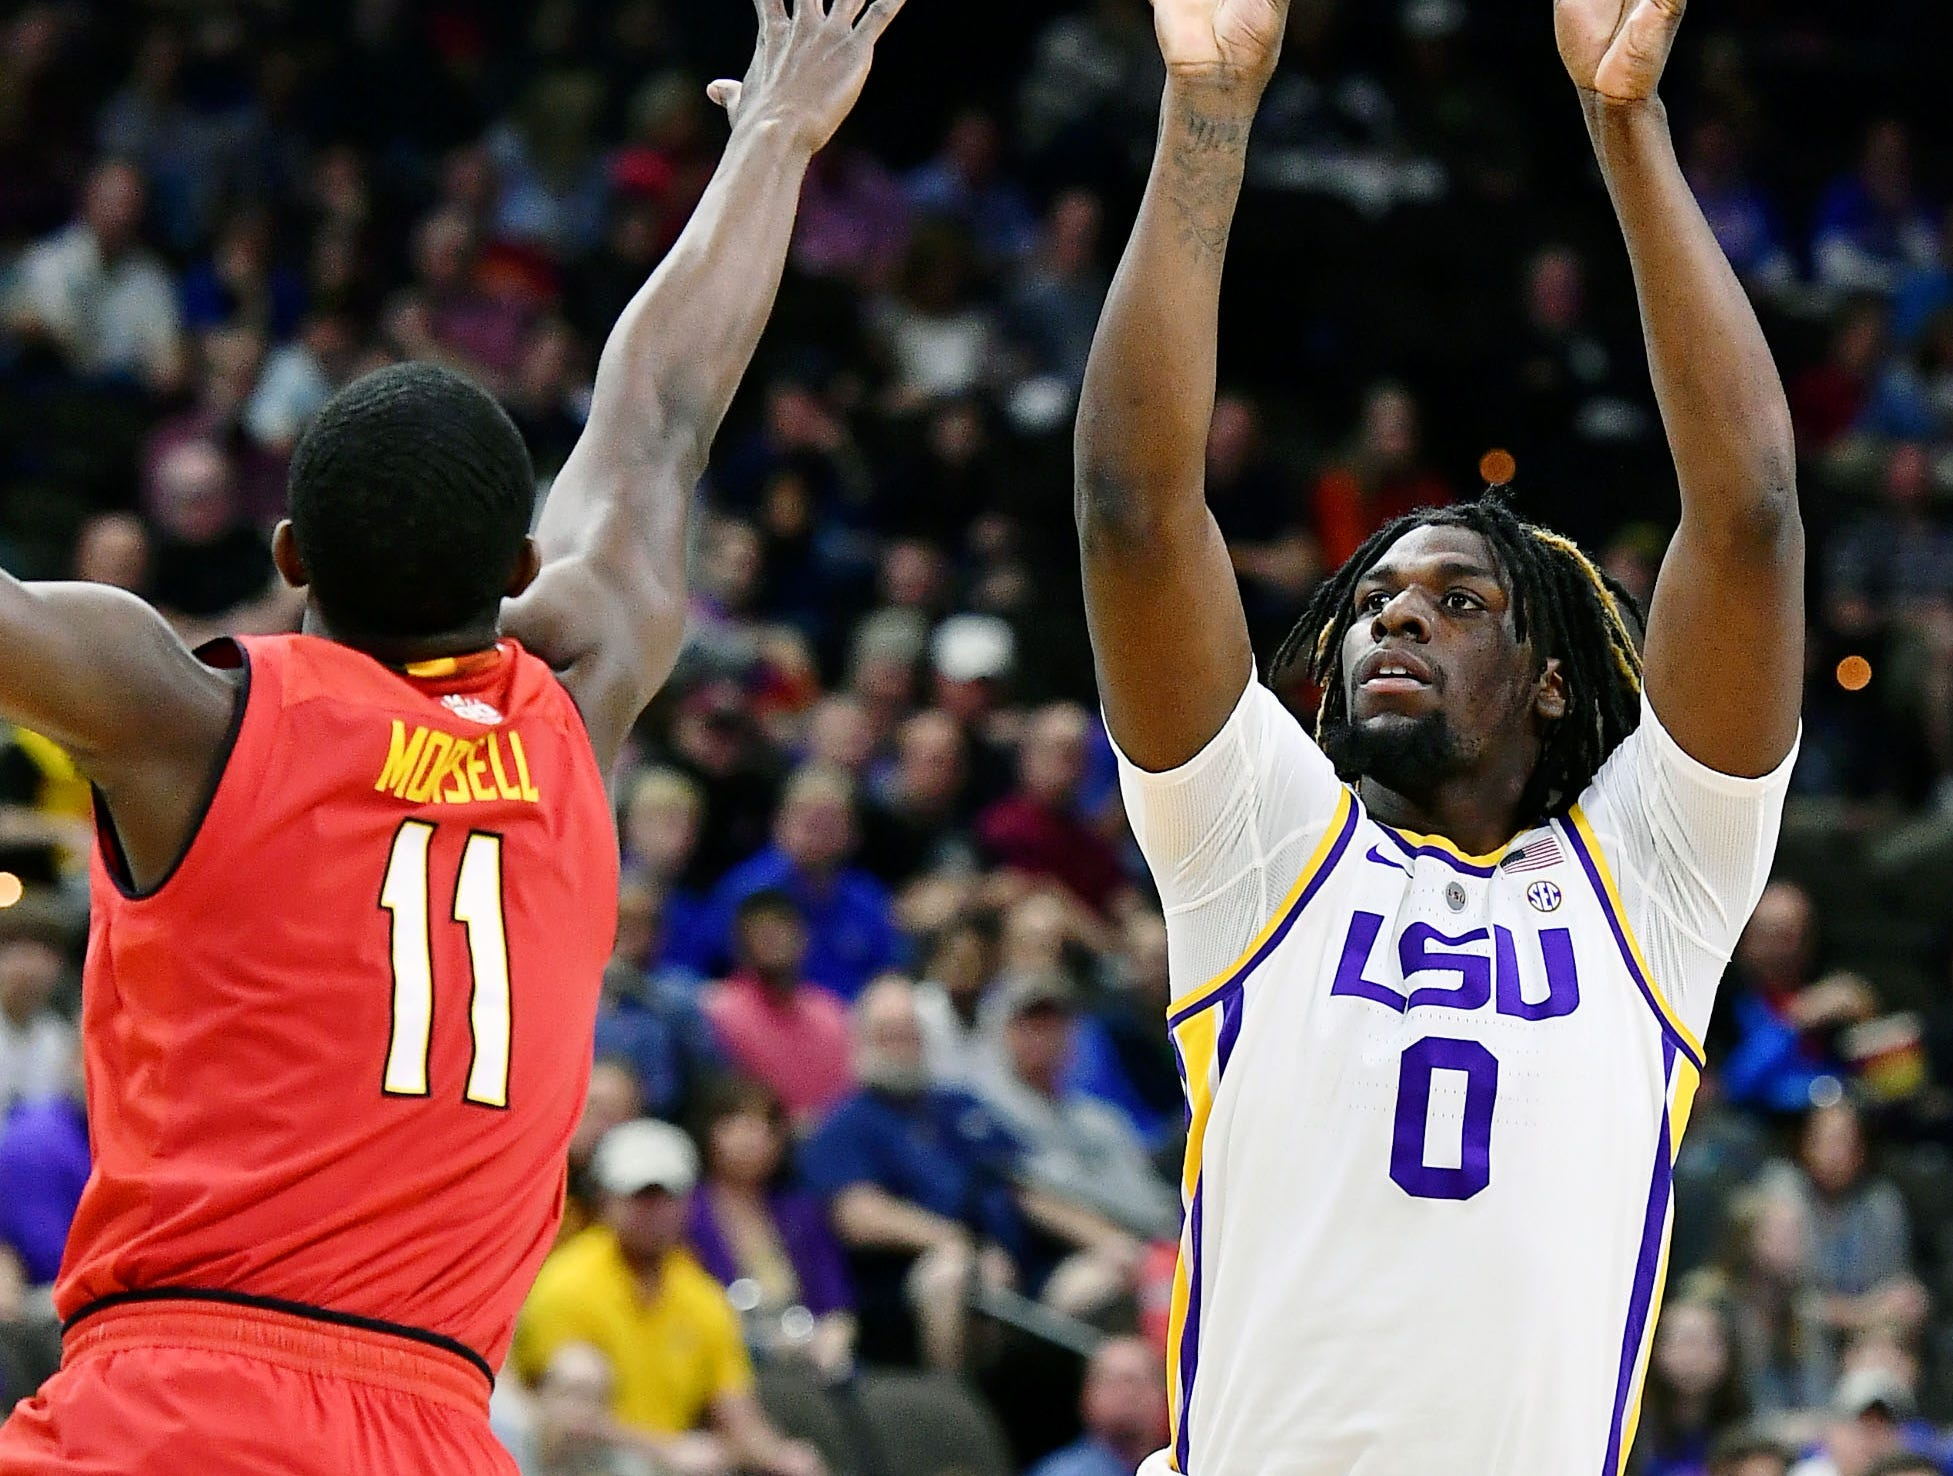 Mar 23, 2019; Jacksonville, FL, USA; LSU Tigers forward Naz Reid (0) shoots while defended by Maryland Terrapins guard Darryl Morsell (11) during the first half in the second round of the 2019 NCAA Tournament at Jacksonville Veterans Memorial Arena. Mandatory Credit: John David Mercer-USA TODAY Sports